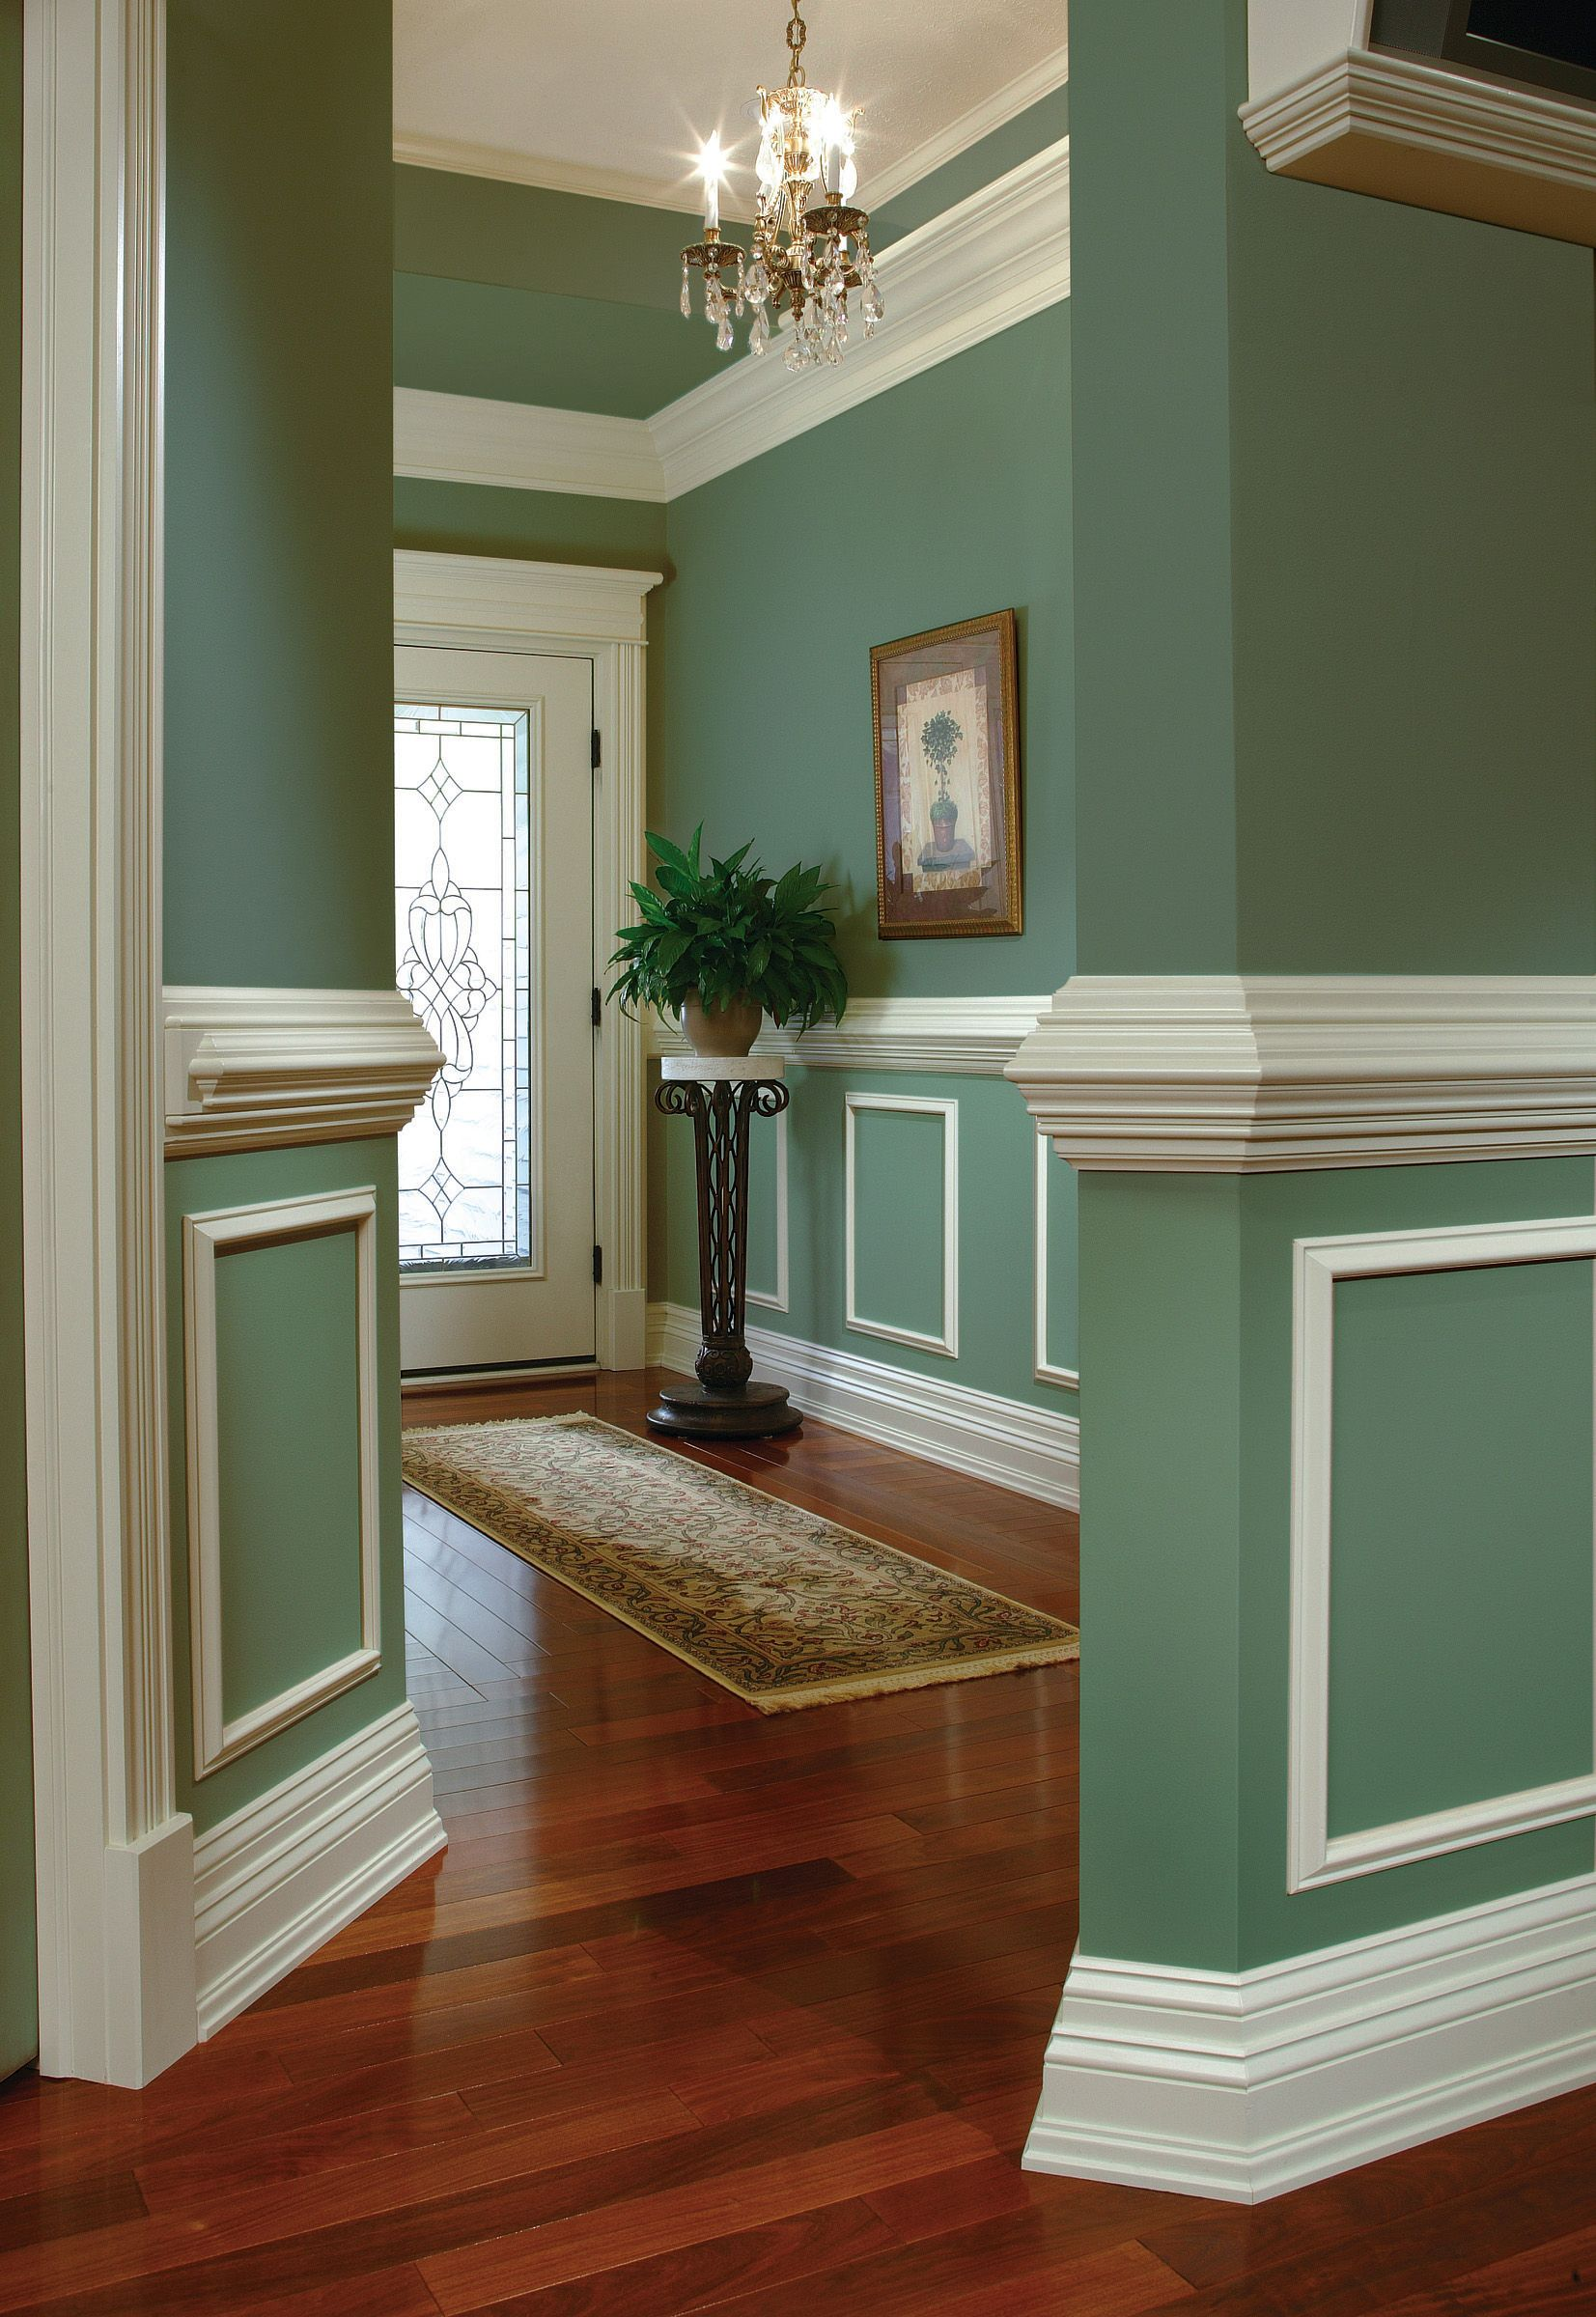 Practical and decorative, a chair rail adds elegance to